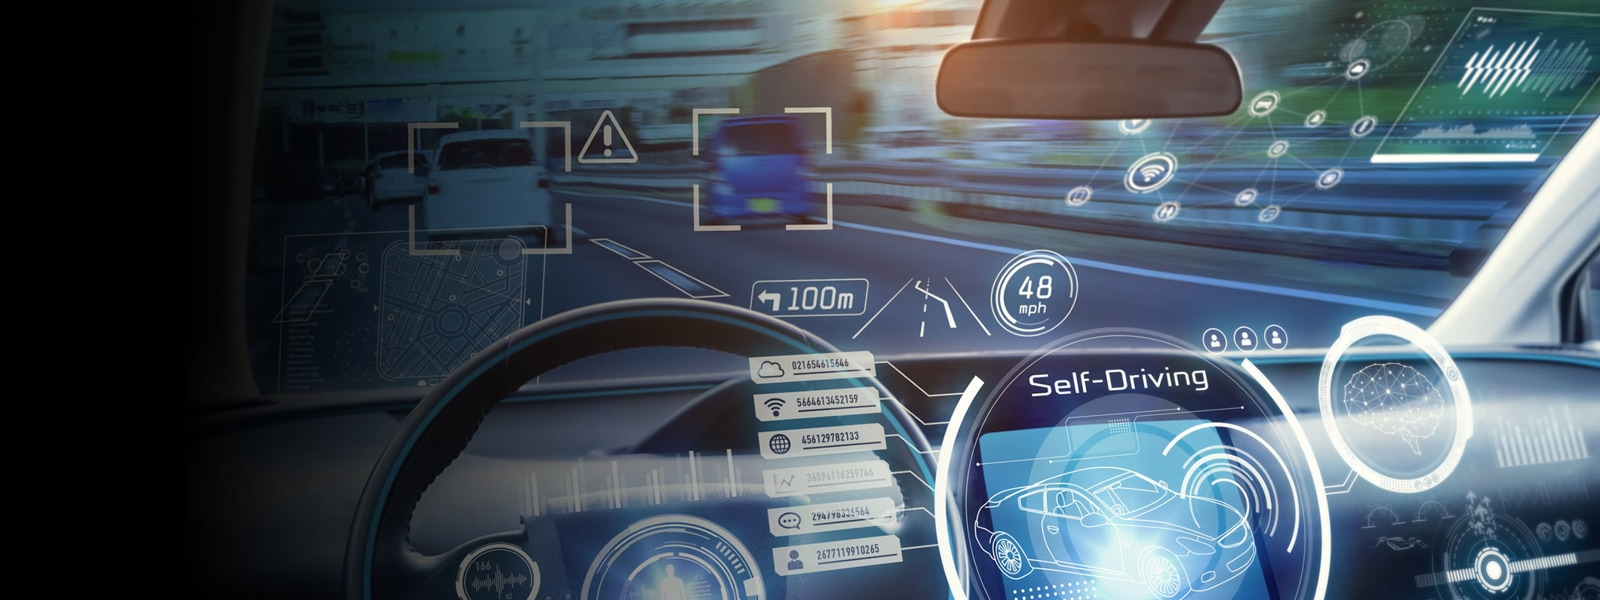 The interior of a self-driving vehicle displaying technology features